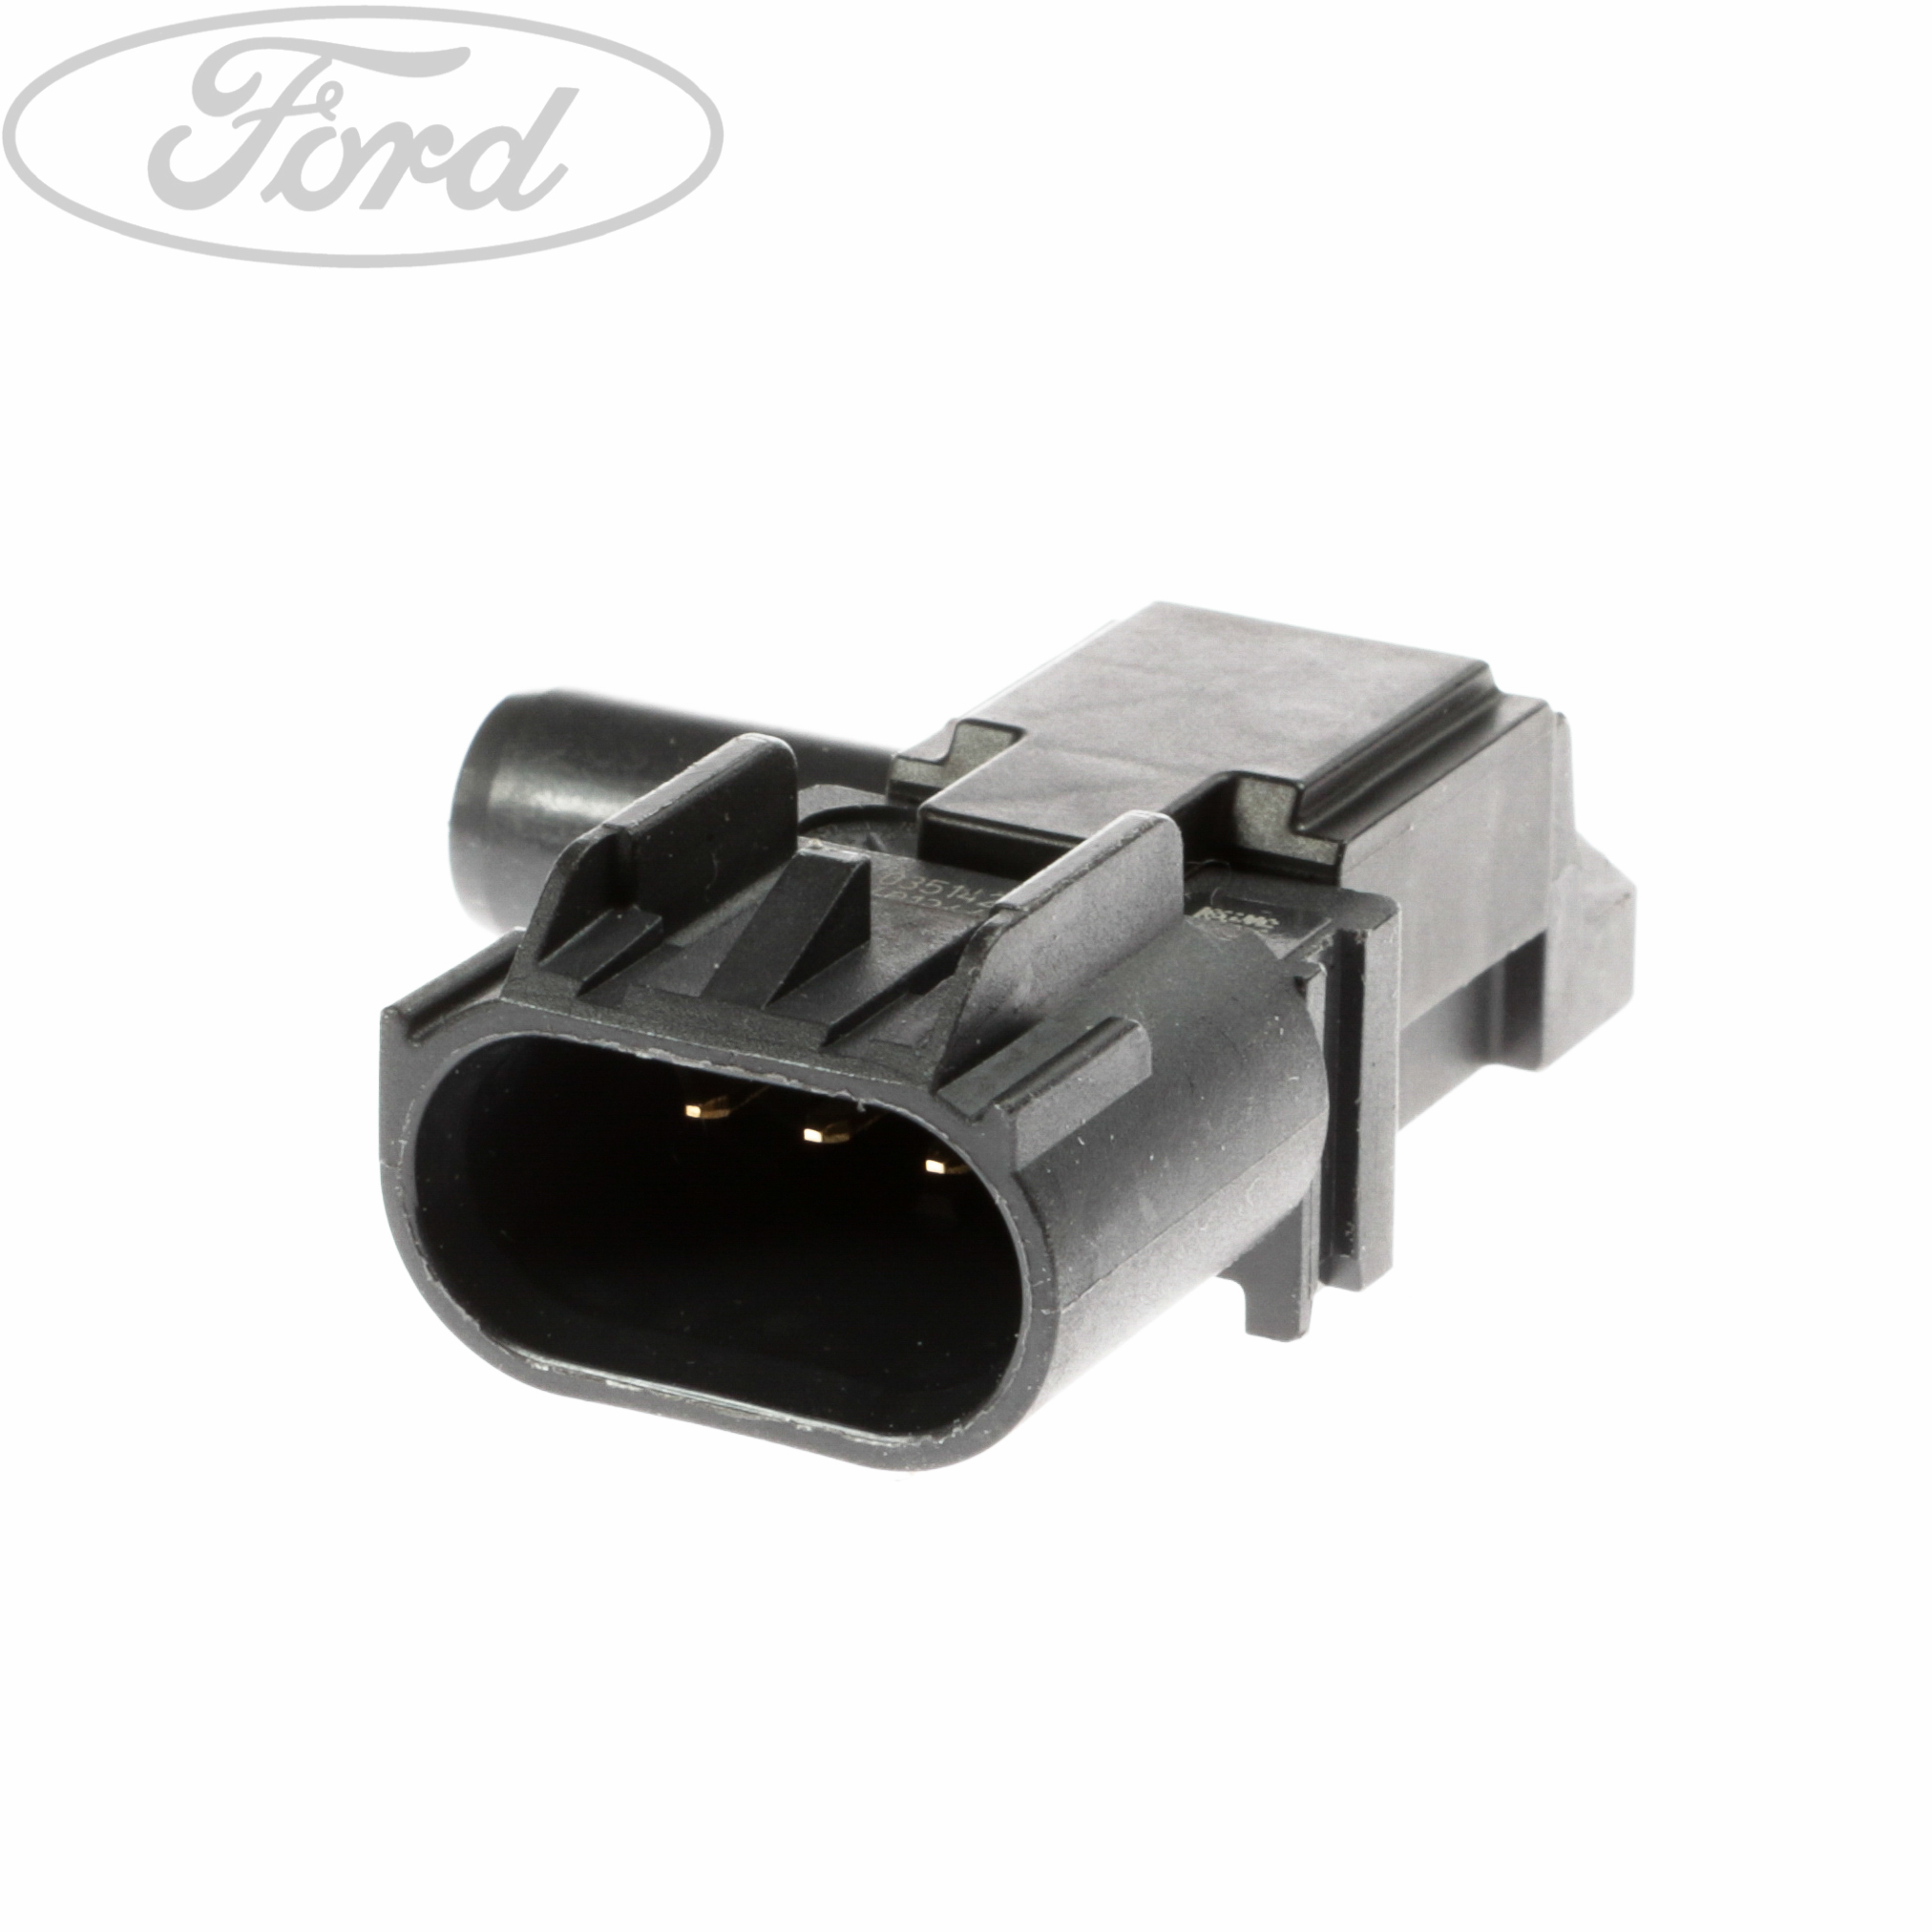 Ford Aspire Exhaust Pressure Sensor